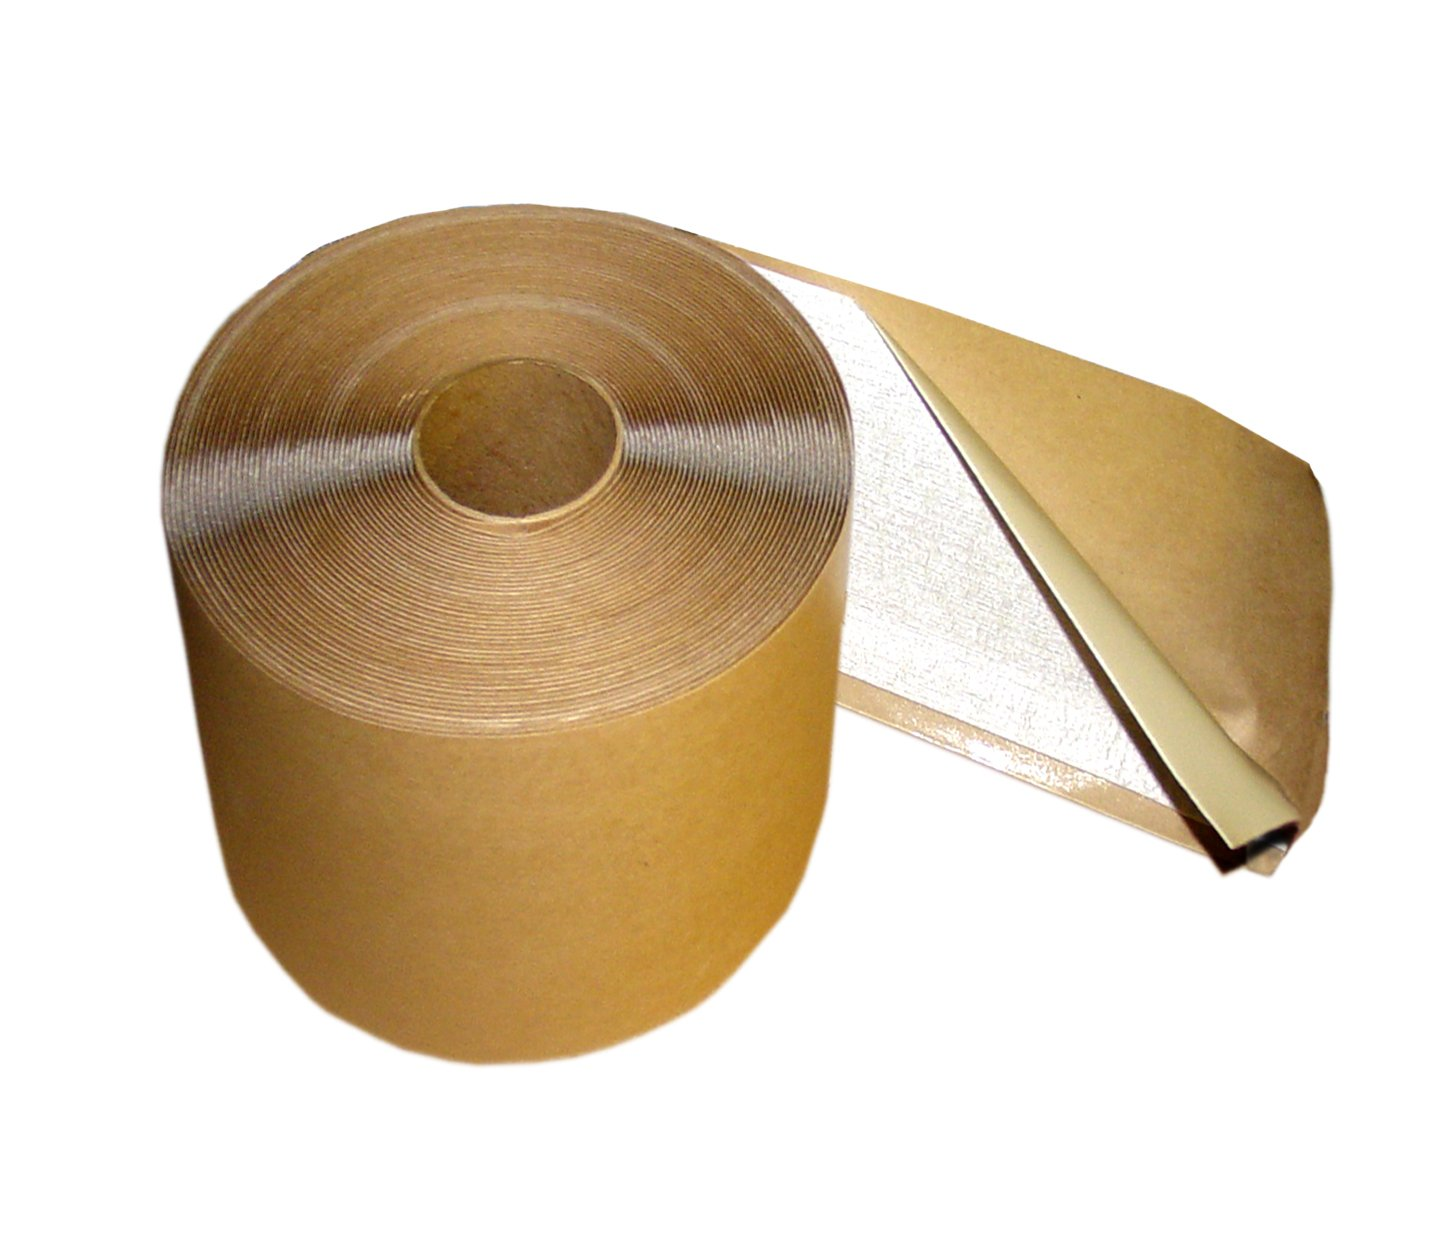 Ames Peel Stick Seam Tape